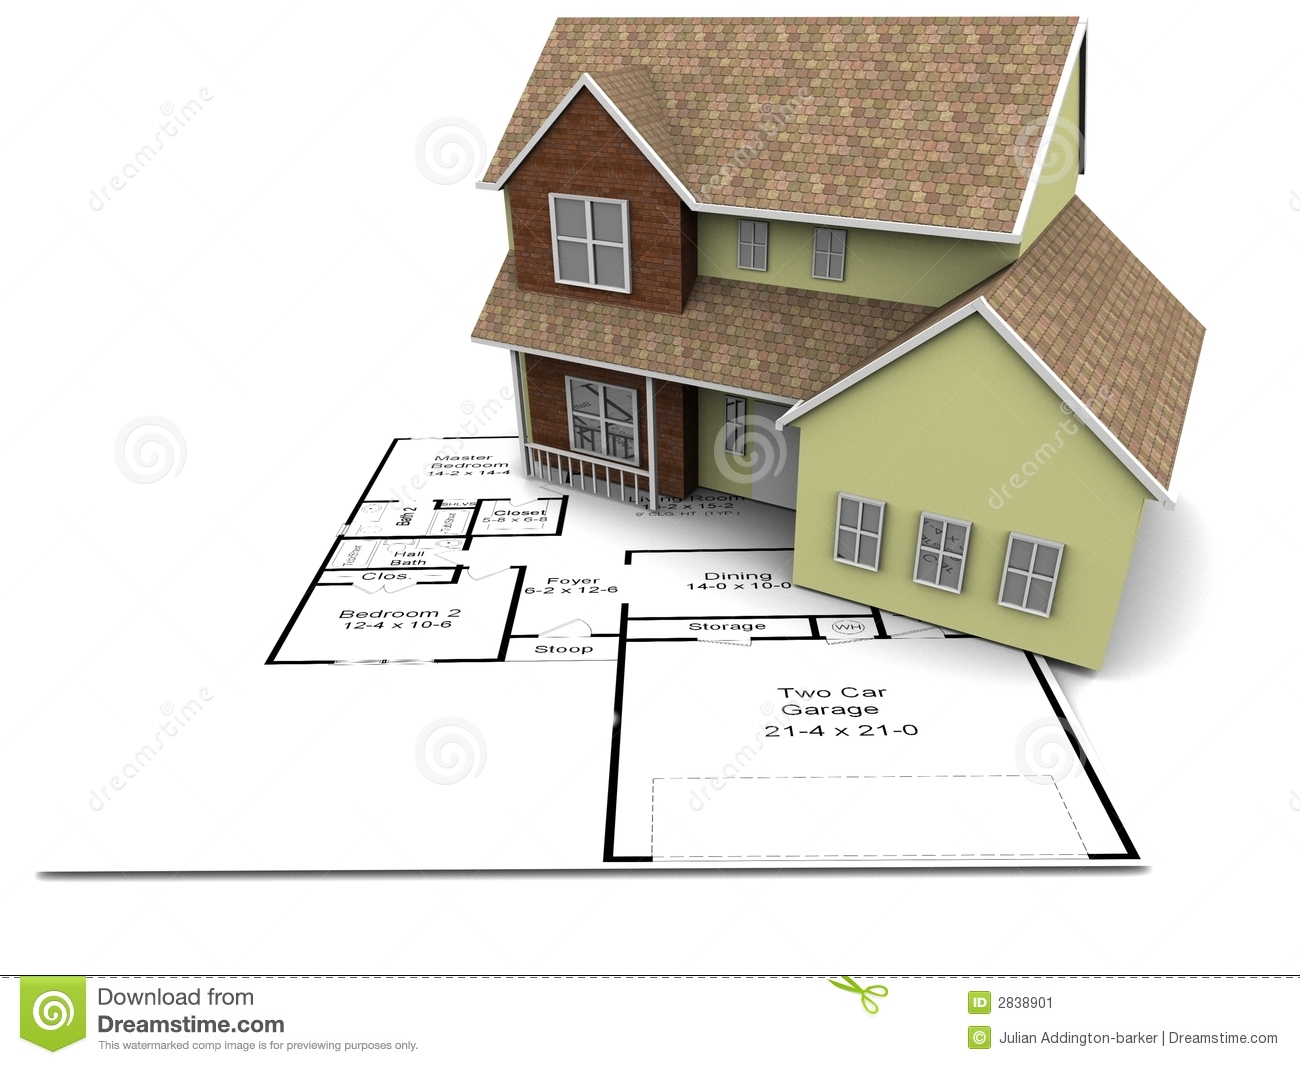 New house plans stock illustration illustration of house for Latest building designs and plans